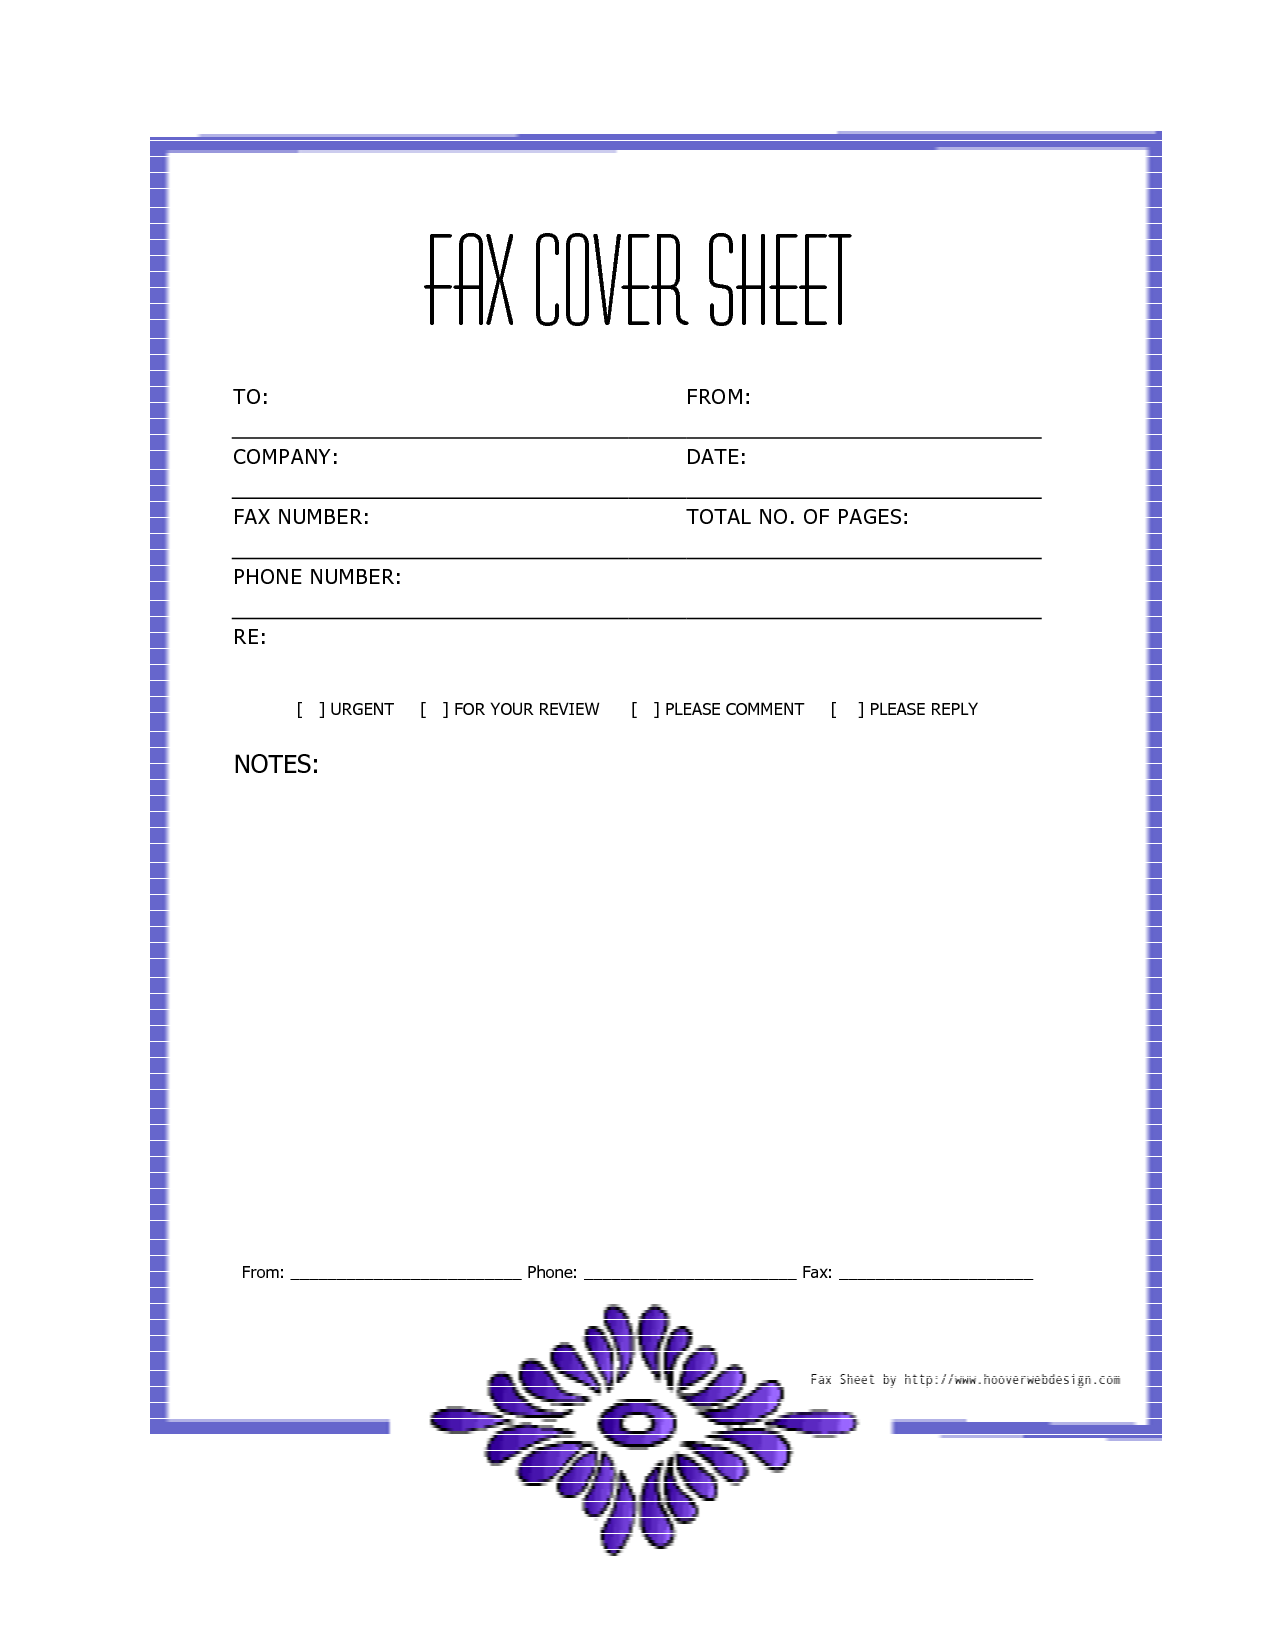 Free Downloads Fax Covers Sheets | Free Printable Fax Cover Sheet Template  Elegant   Download As  Fax Cover Sheet For Resume